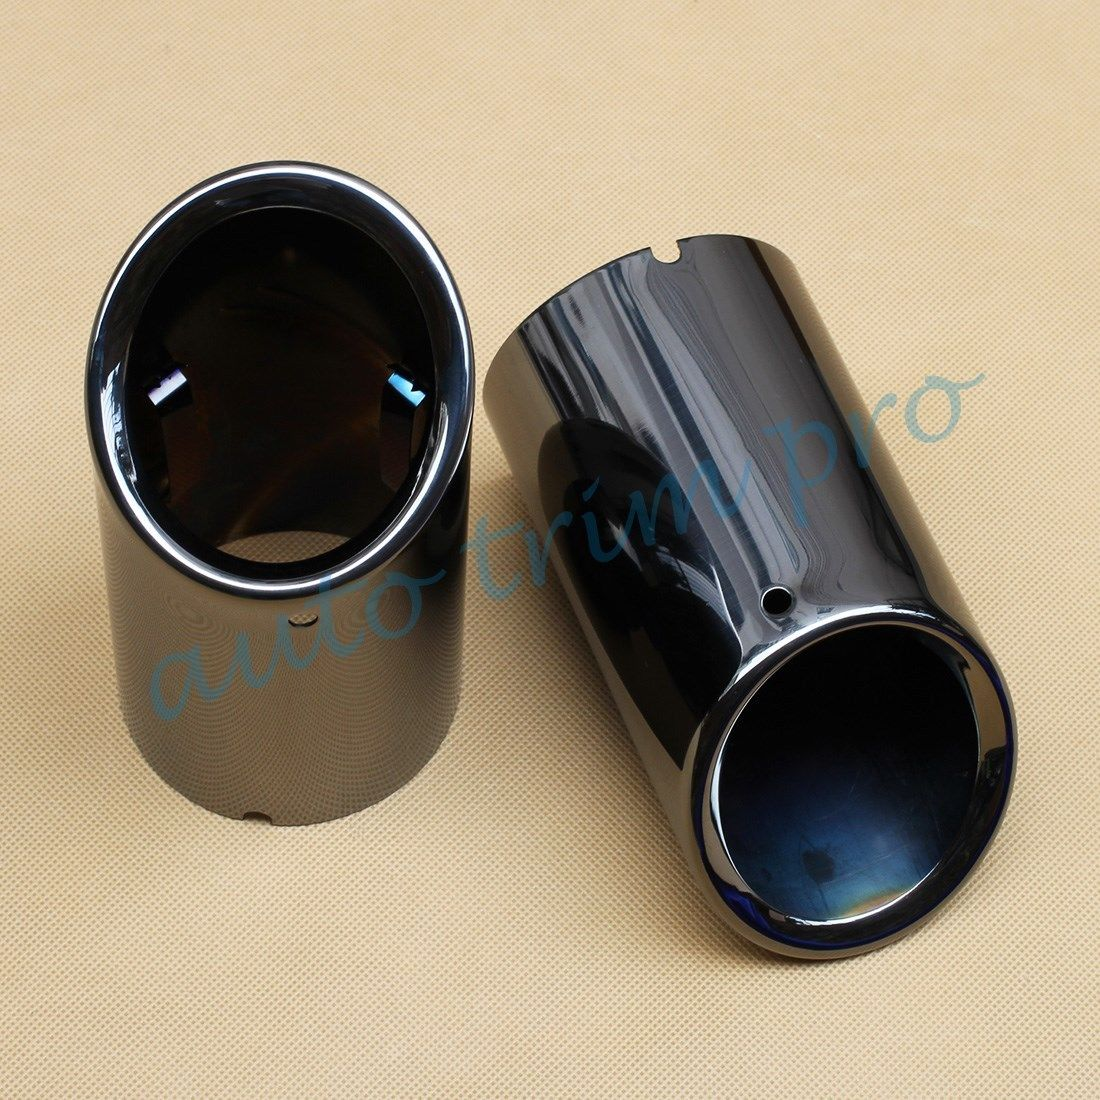 Fit For Audi A4 B8 1.82.0T 2009-2017 Rear Exhaust Tail Muffler Tip Pipe Accessories Decorate